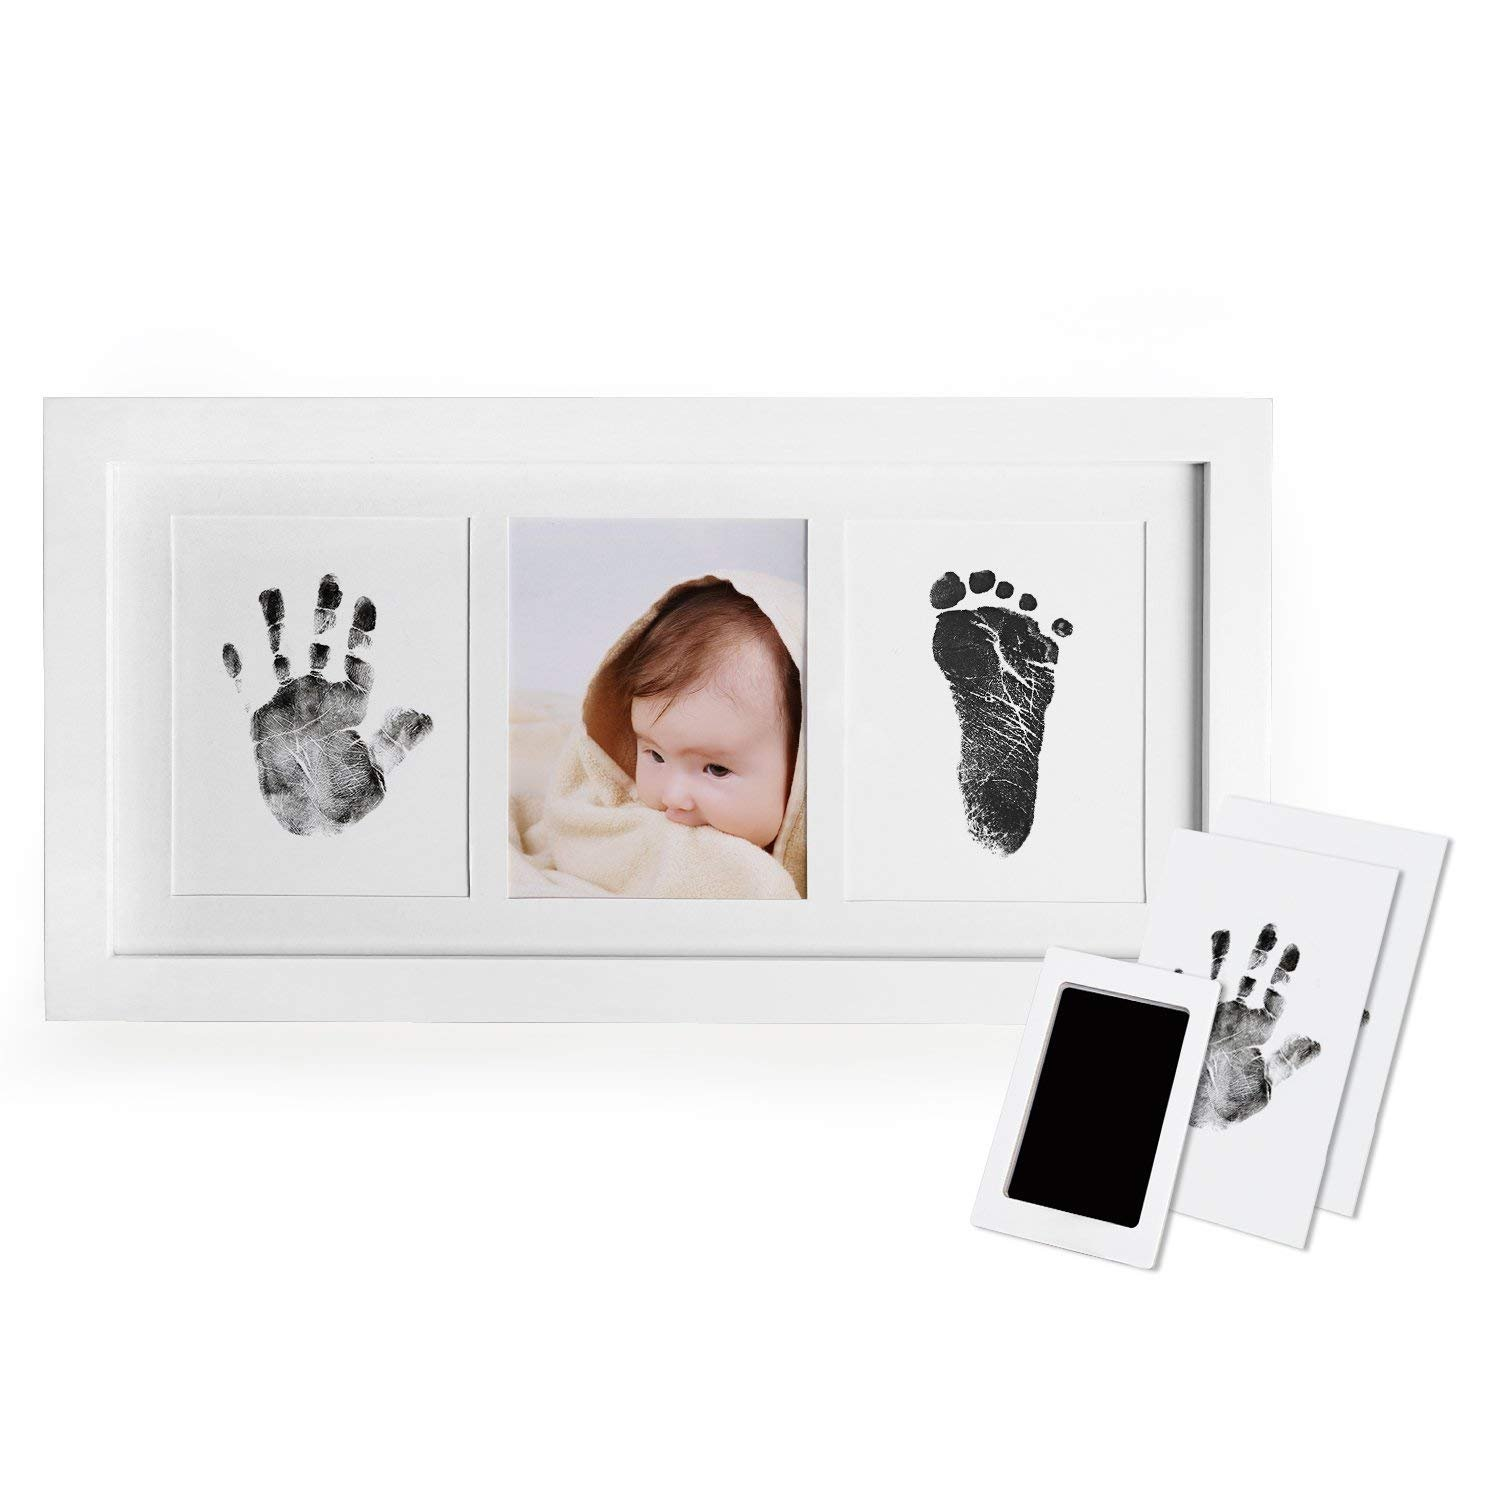 Upala Baby Handprint Footprint Photo Frame Kit Newborn Boys Girls, Babyprints Paper Clean Touch Ink Pad to Create Baby's Prints, Amazing